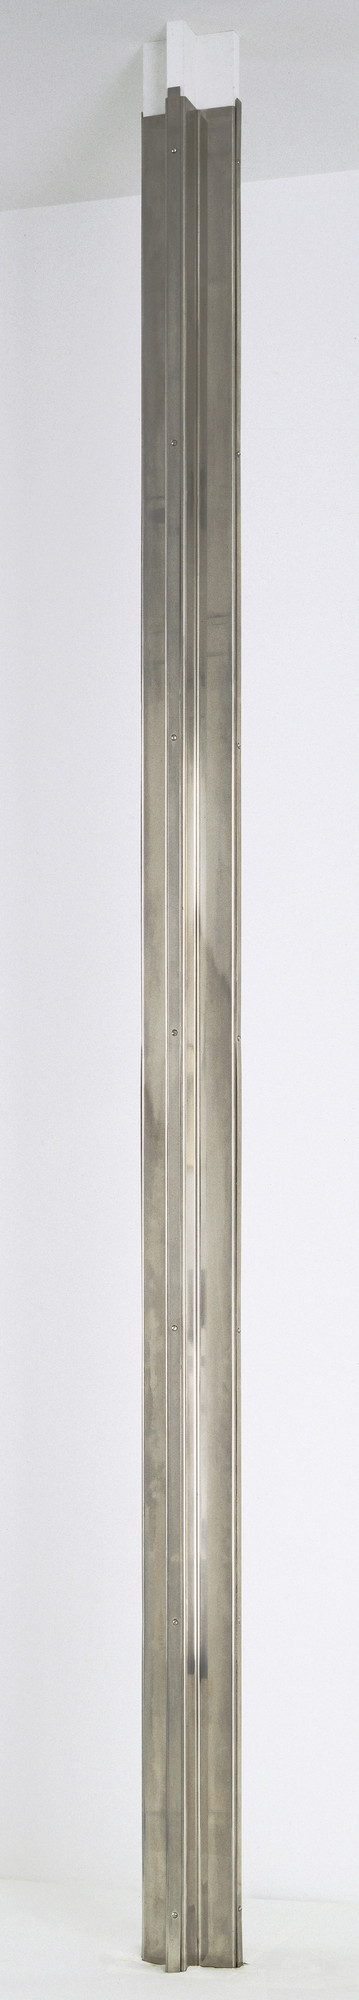 Ludwig Mies van der Rohe. Column Cover for the German Pavilion, International Exposition, Barcelona, Spain. 1928-29